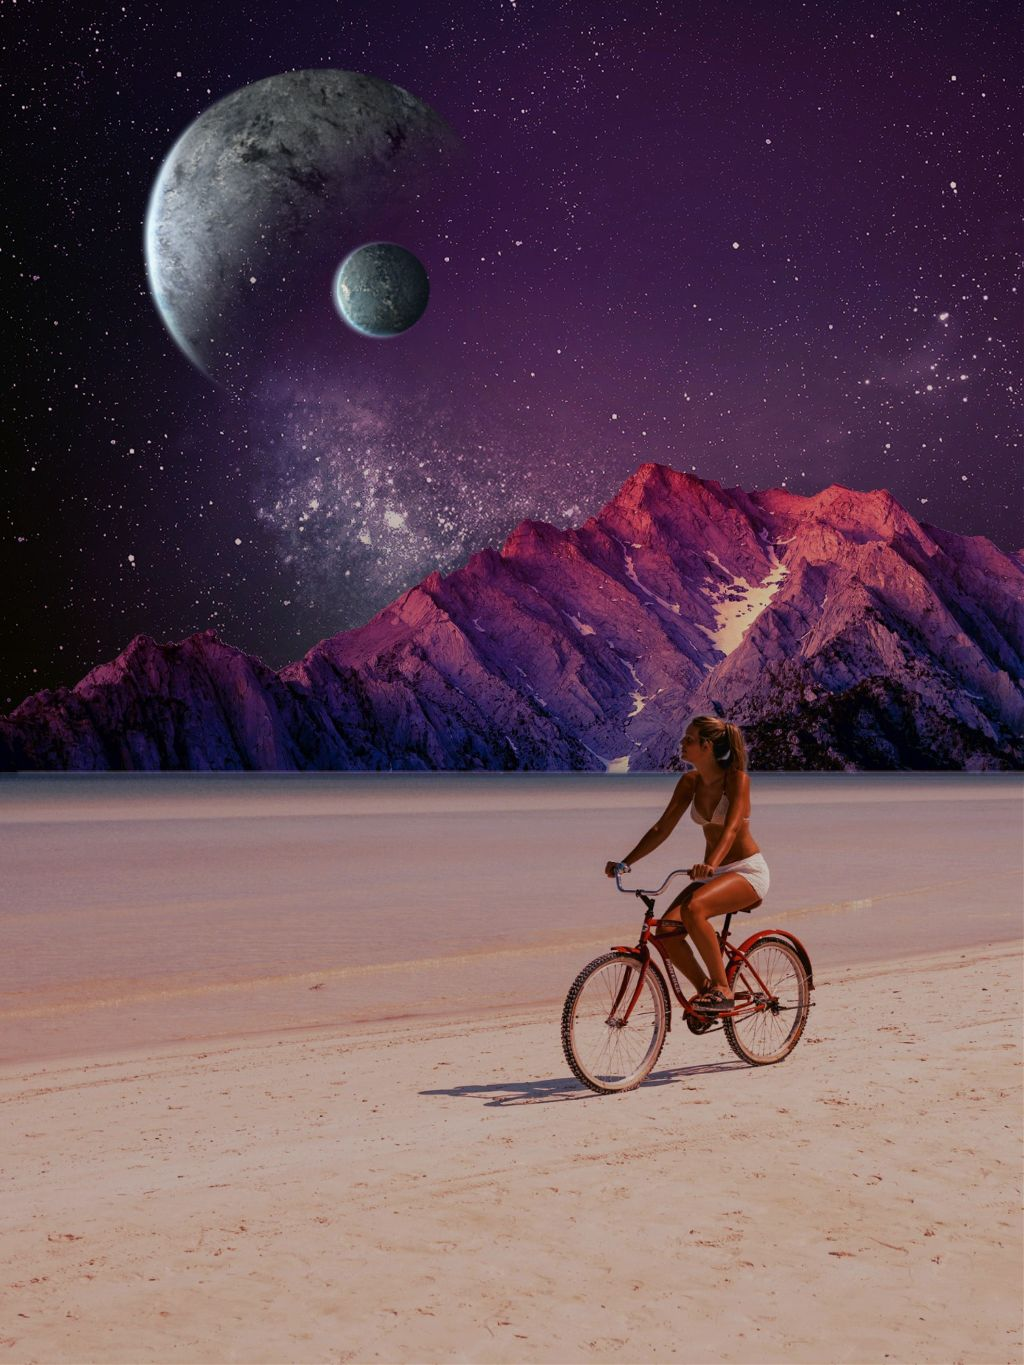 Happy Friday to all🤗 #bikeronthebeach #ecparalleluniverse Image from @freetoedit and some free stickers #photomanipulation #galaxy #beach #nature #photoblending #madewithpicsart #editstepbystep #myedit #surreal #surreality